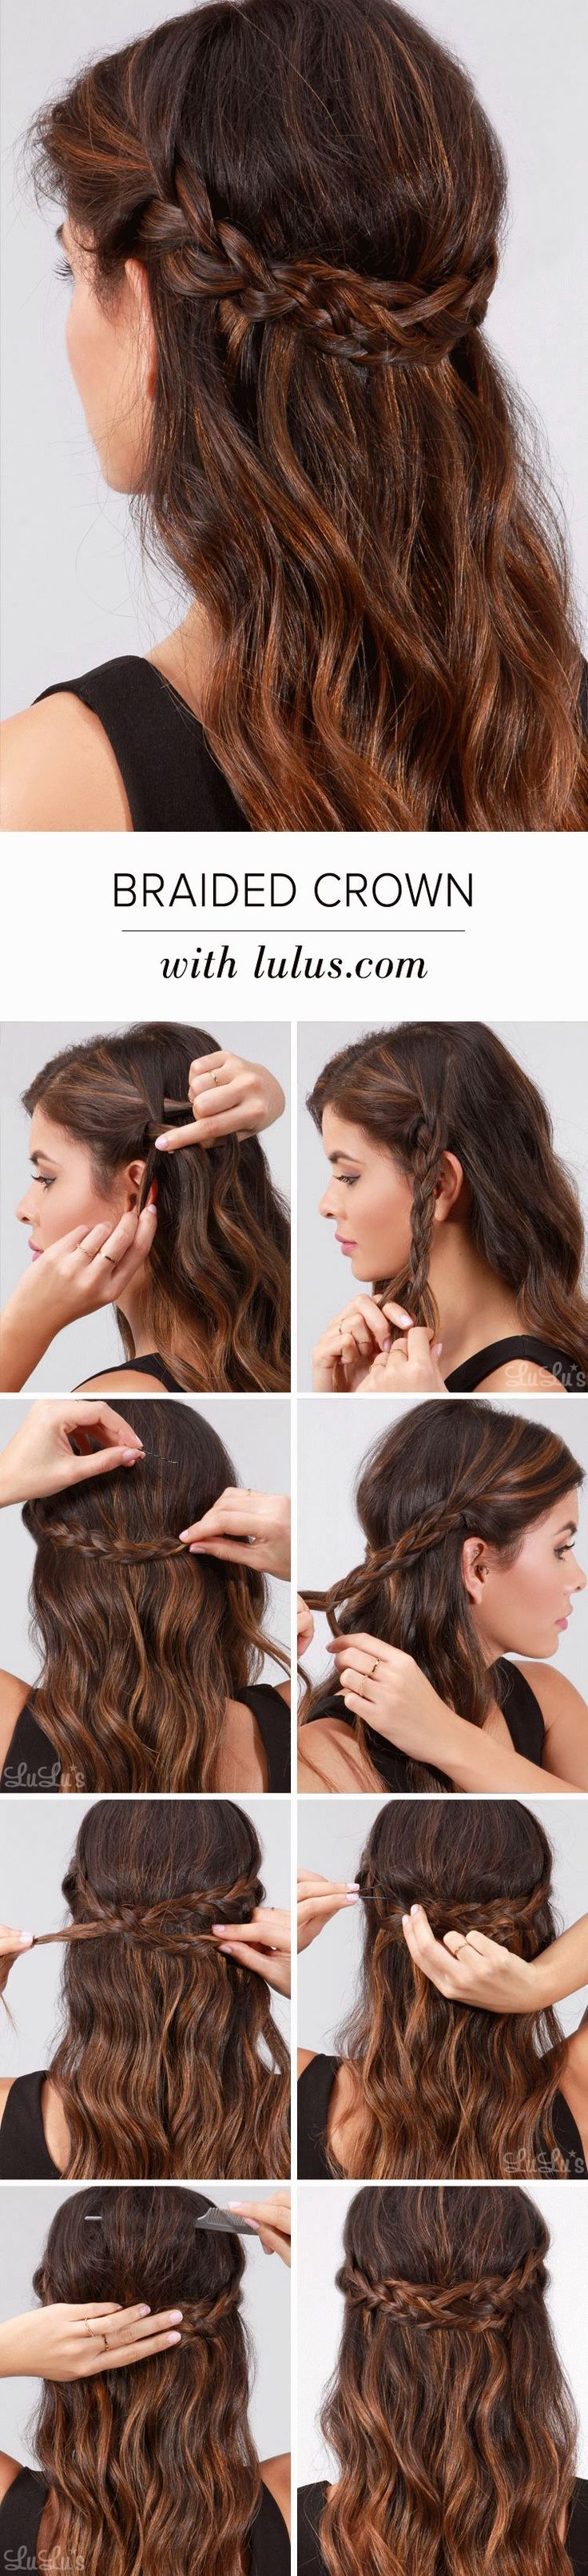 89 best Hochzeit images on Pinterest   Hairstyle ideas  Hair makeup     15 Fantastic DIY Ways To Make A Modern Hairstyle In Just a Few Minutes